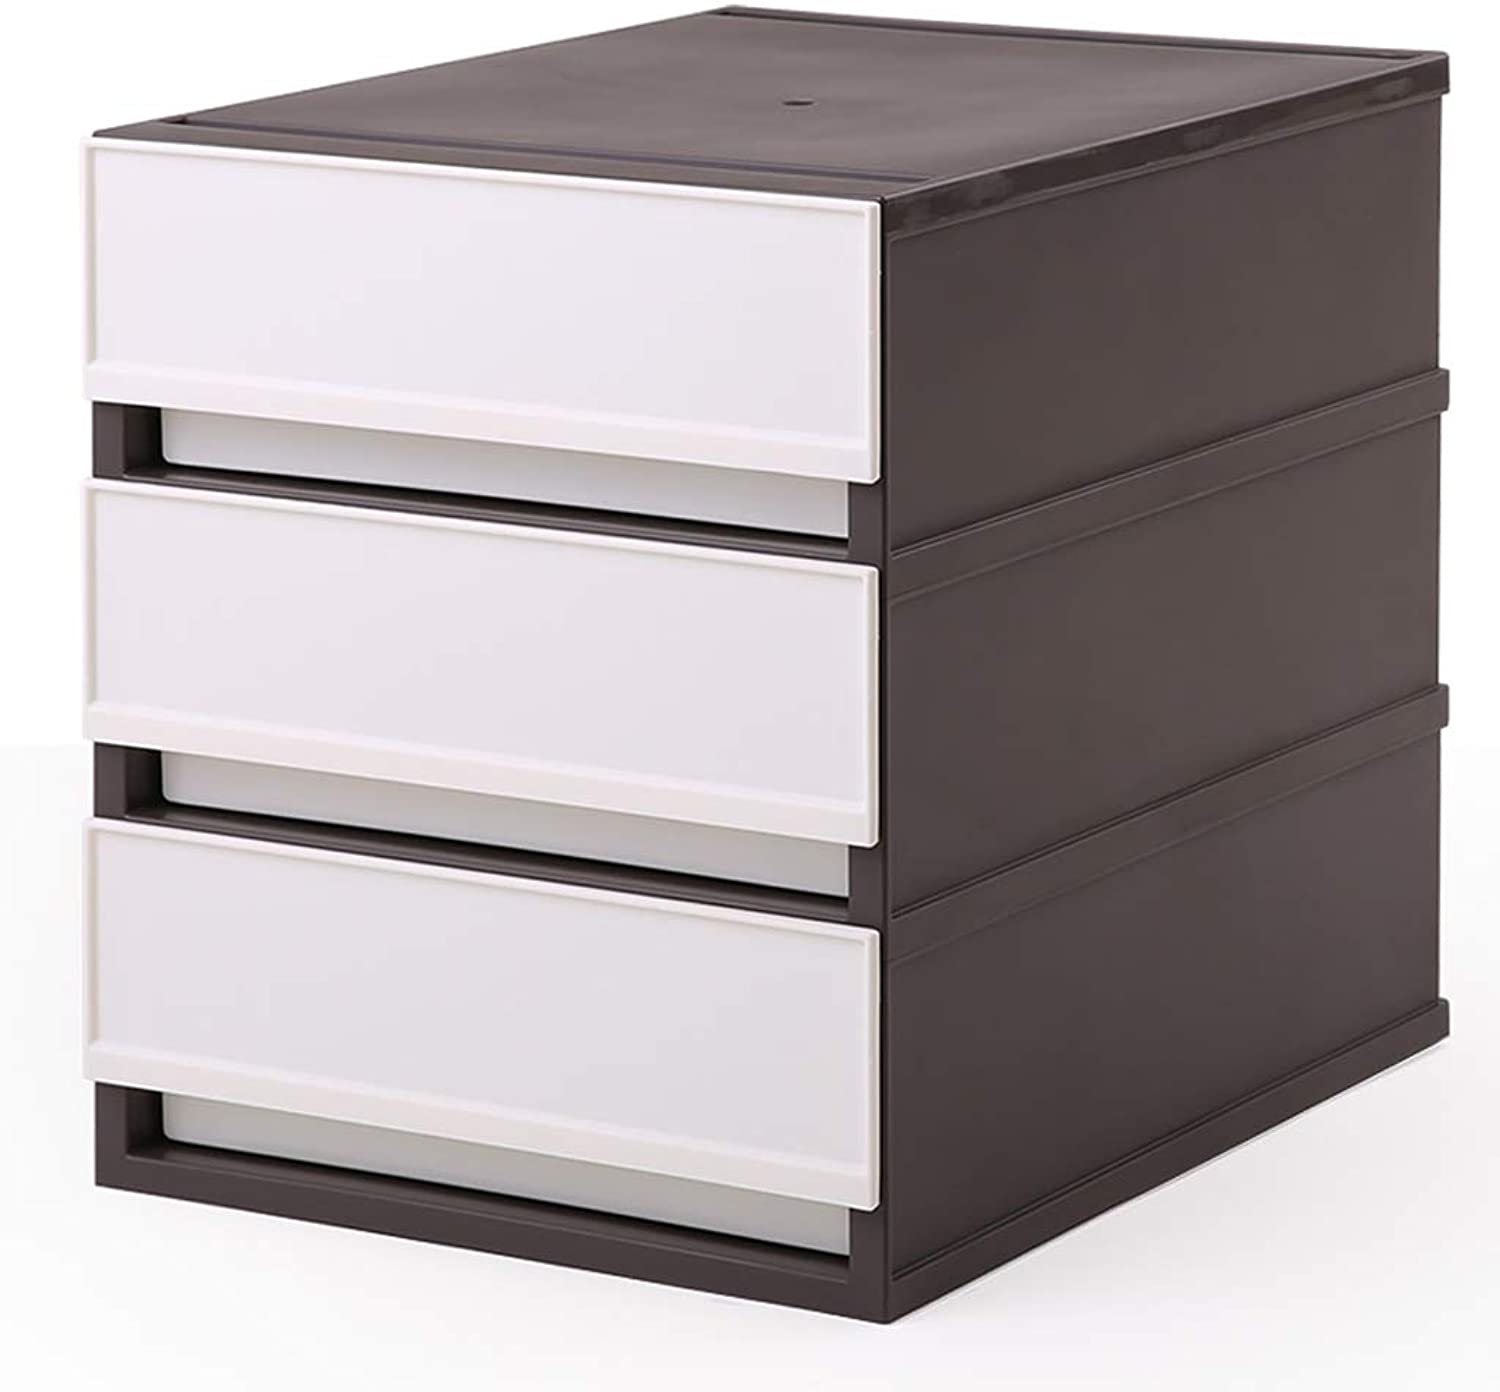 LITING Storage Cabinet Office Drawer File Cabinet Desktop Storage Box Three Layers (color   Coffee)